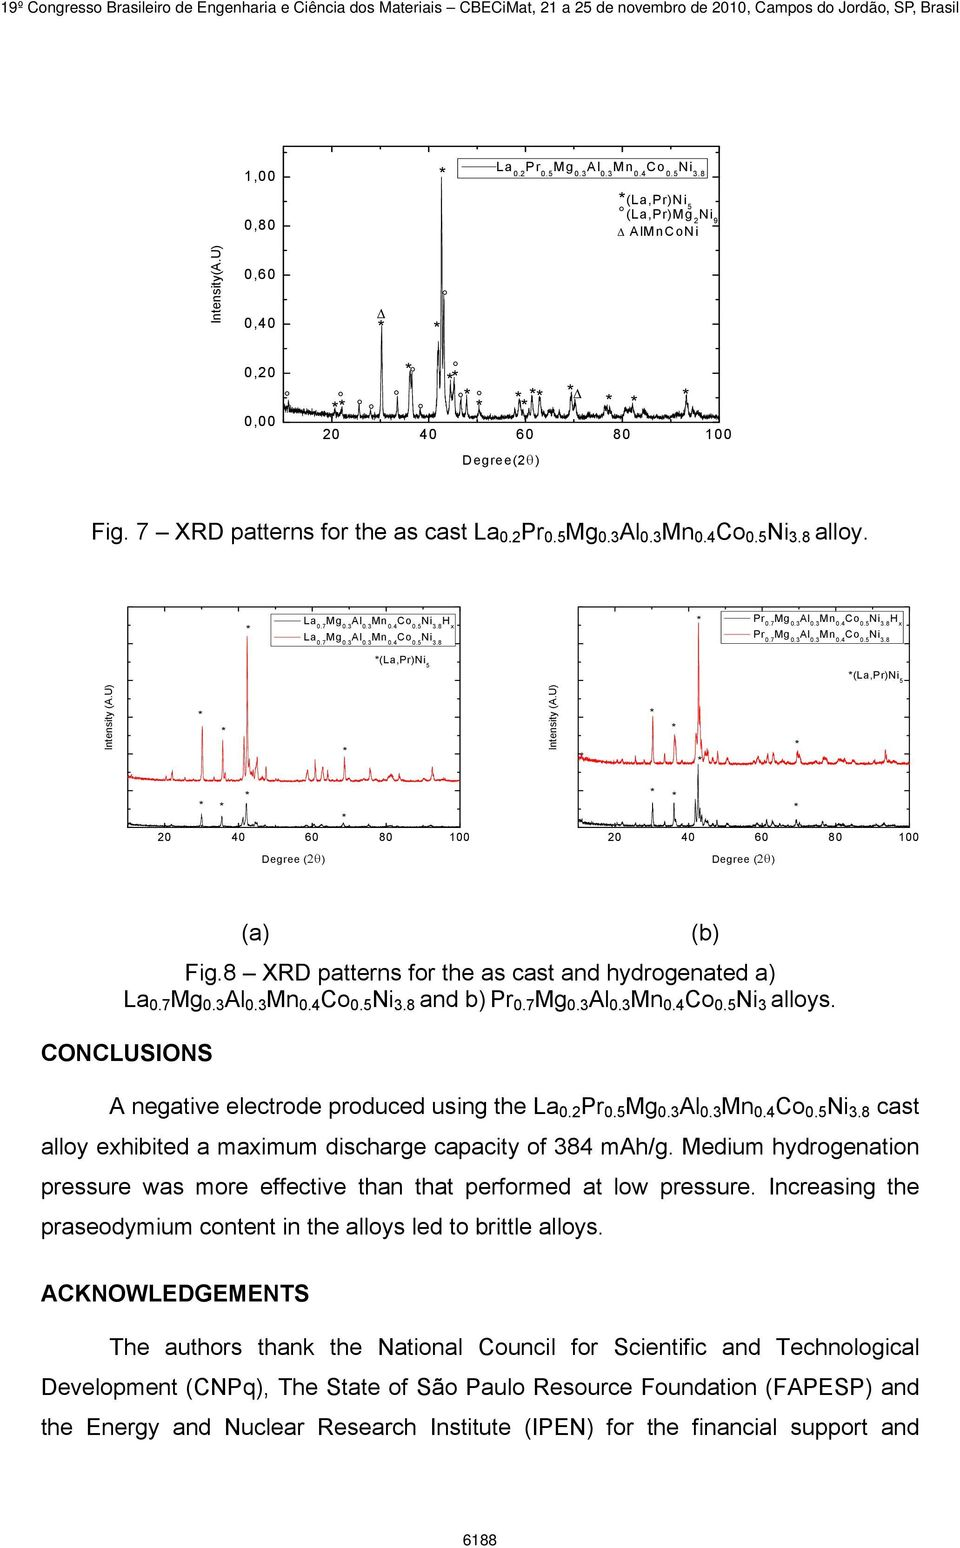 7 and b) Pr 0.7 Ni 3 alloys. CONCLUSIONS A negative electrode produced using the La 0.2 Pr 0.5 cast alloy exhibited a maximum discharge capacity of 384 mah/g.